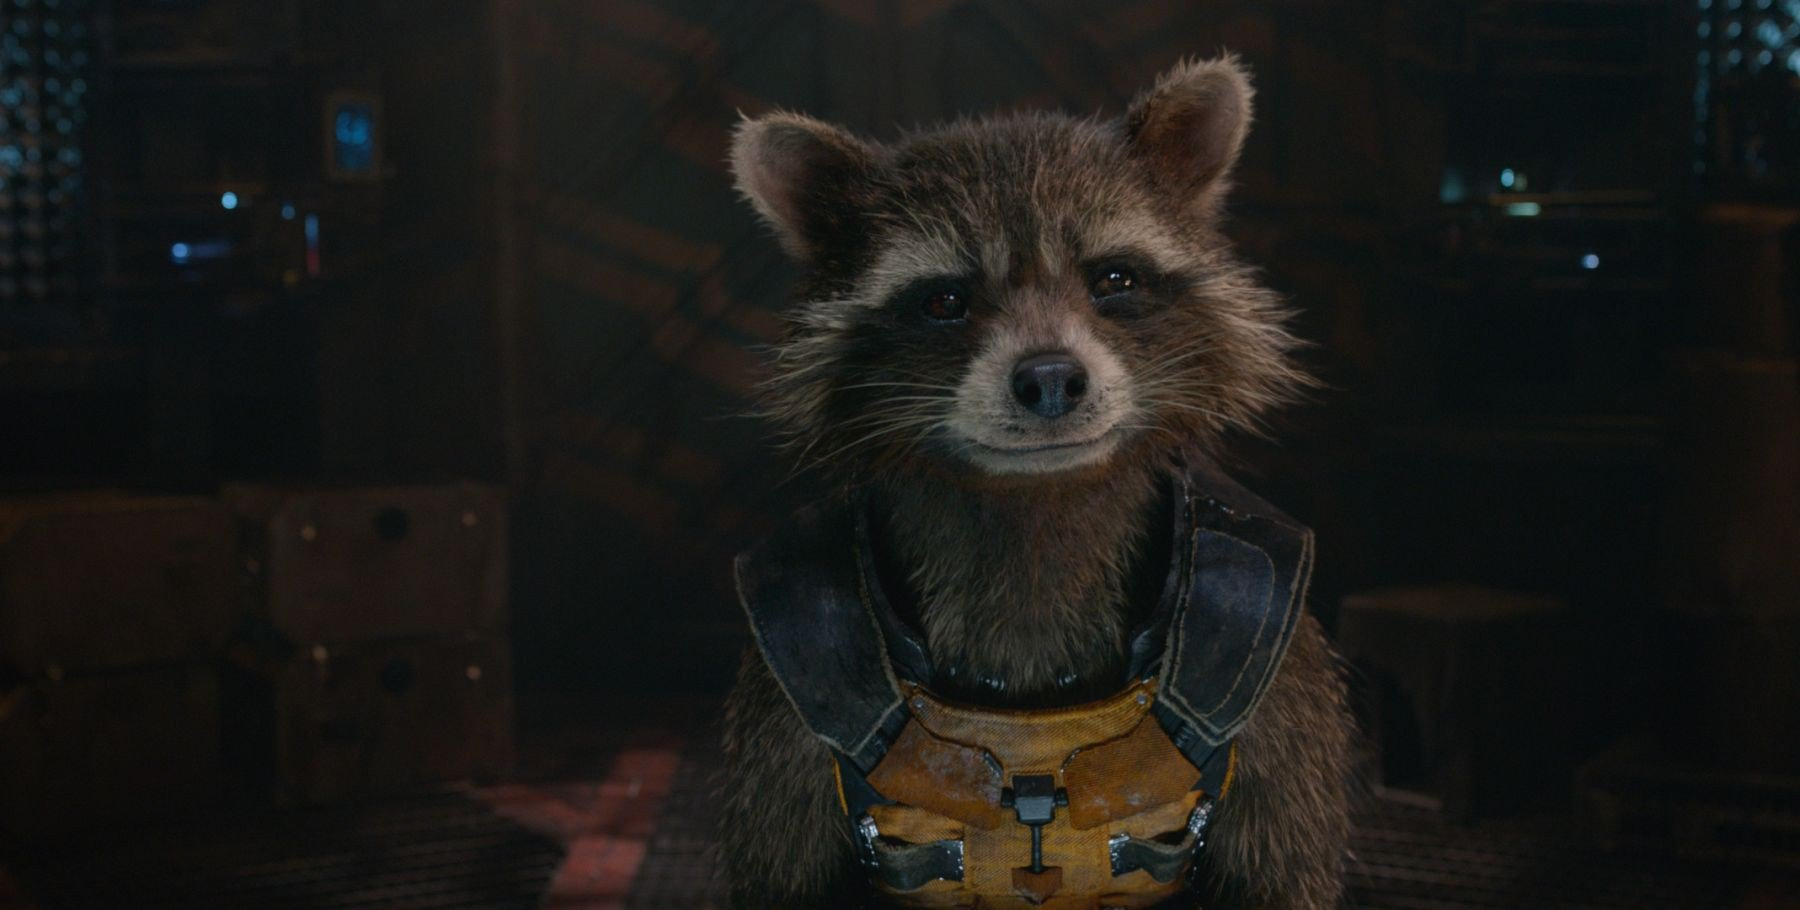 Guardians Of The Galaxy Images Rocket Raccoon HD Wallpaper And Background Photos